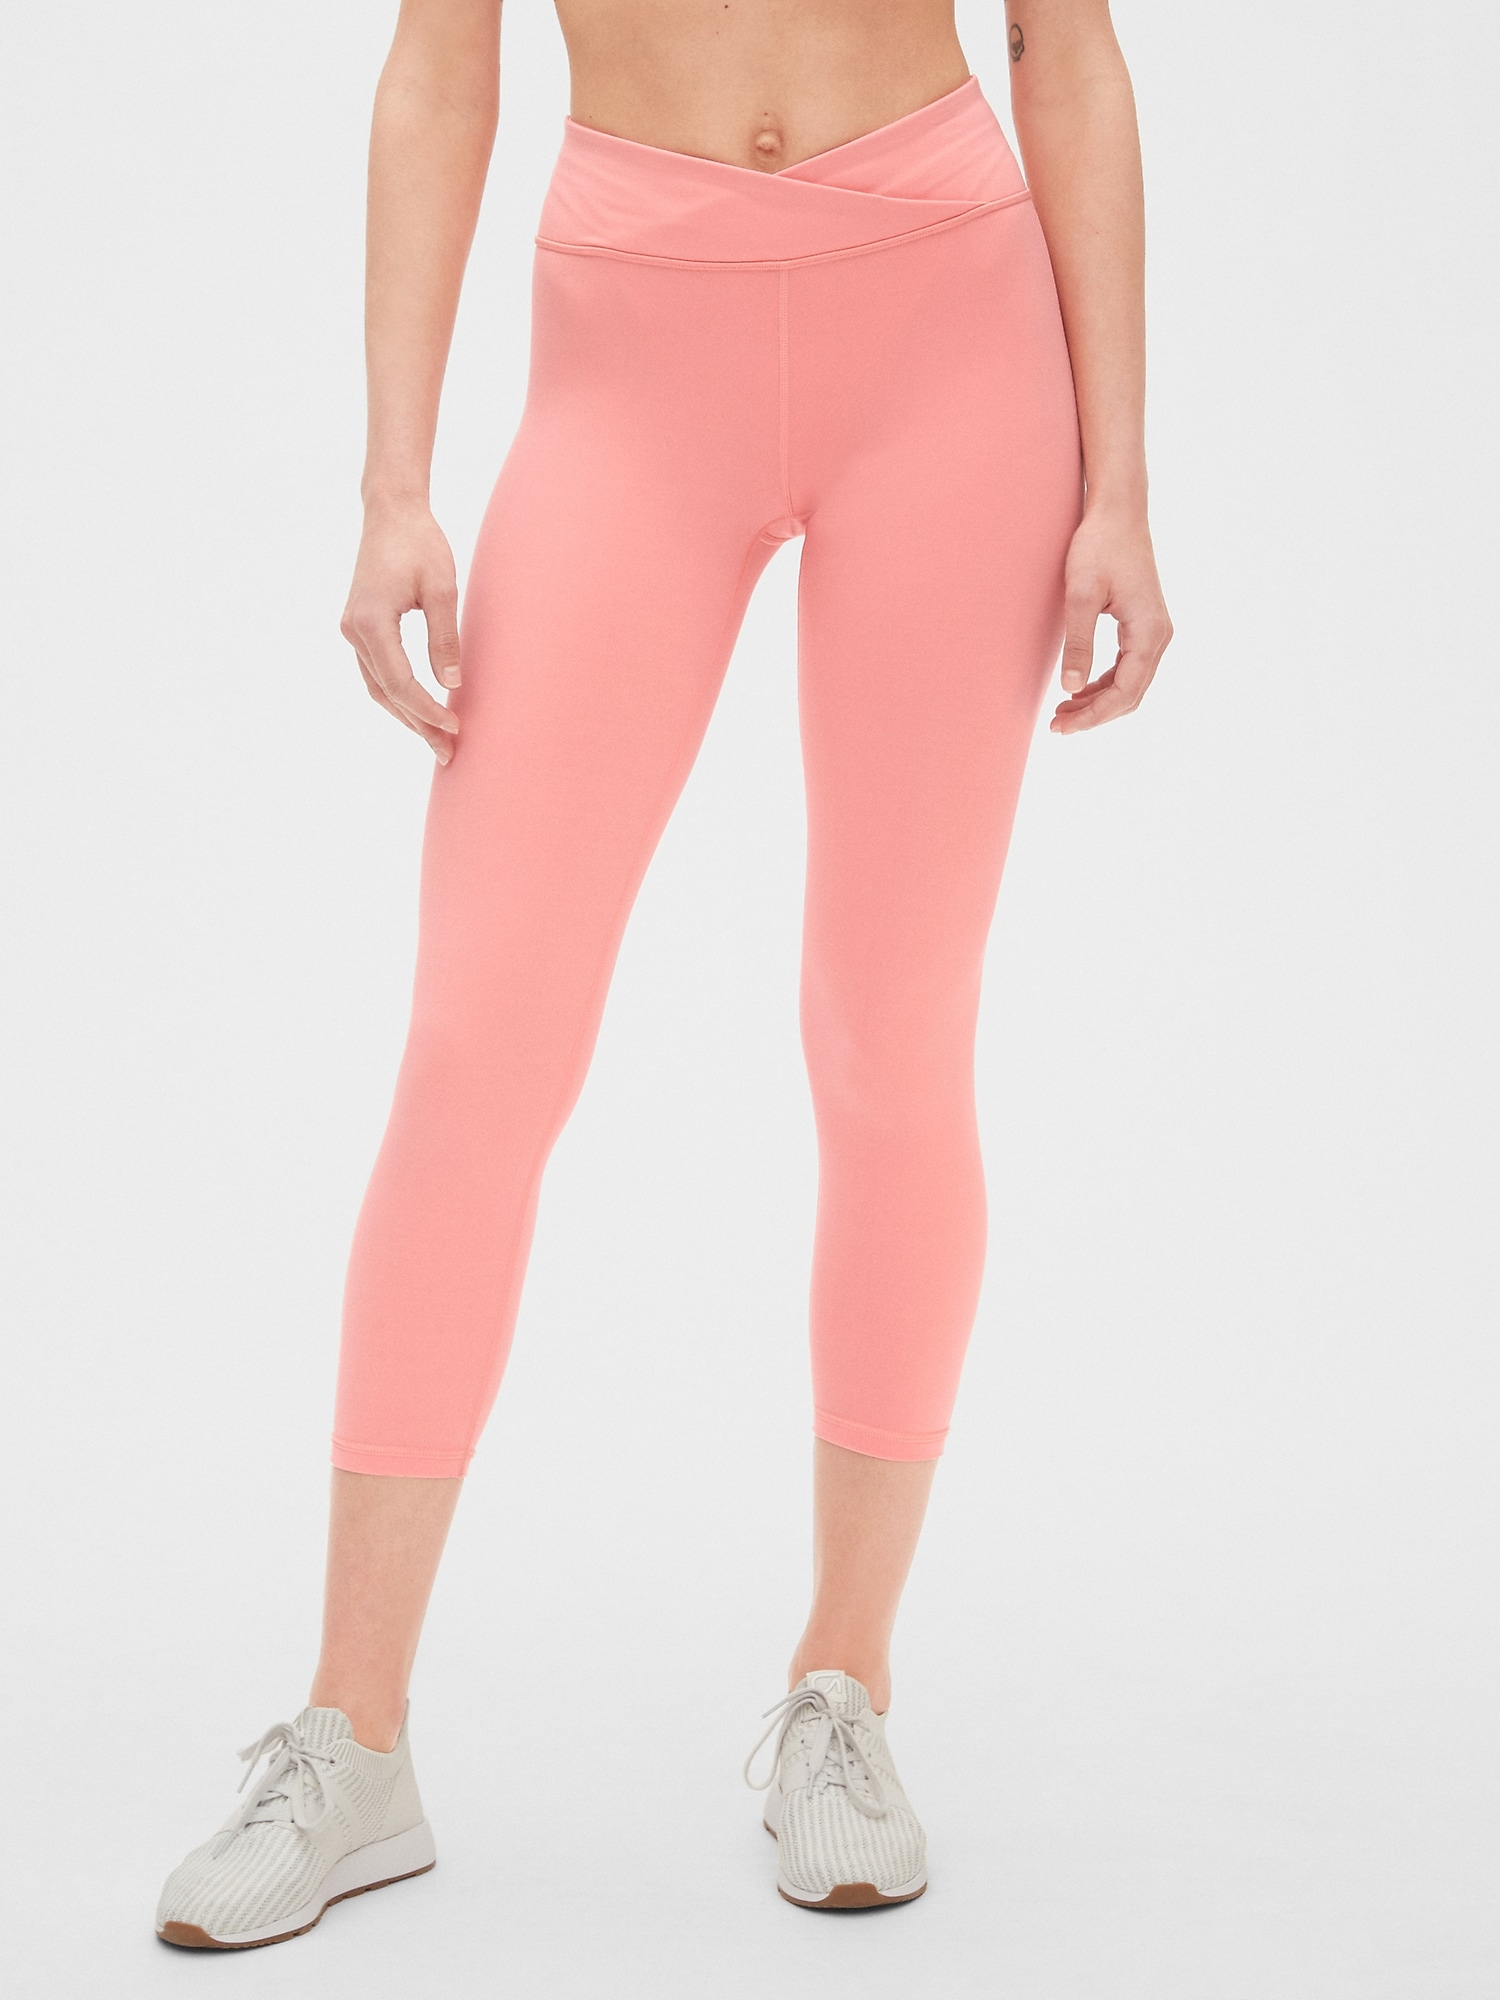 40db2cc461 GapFit Crossover Waist 7/8 Leggings in Eclipse | Gap